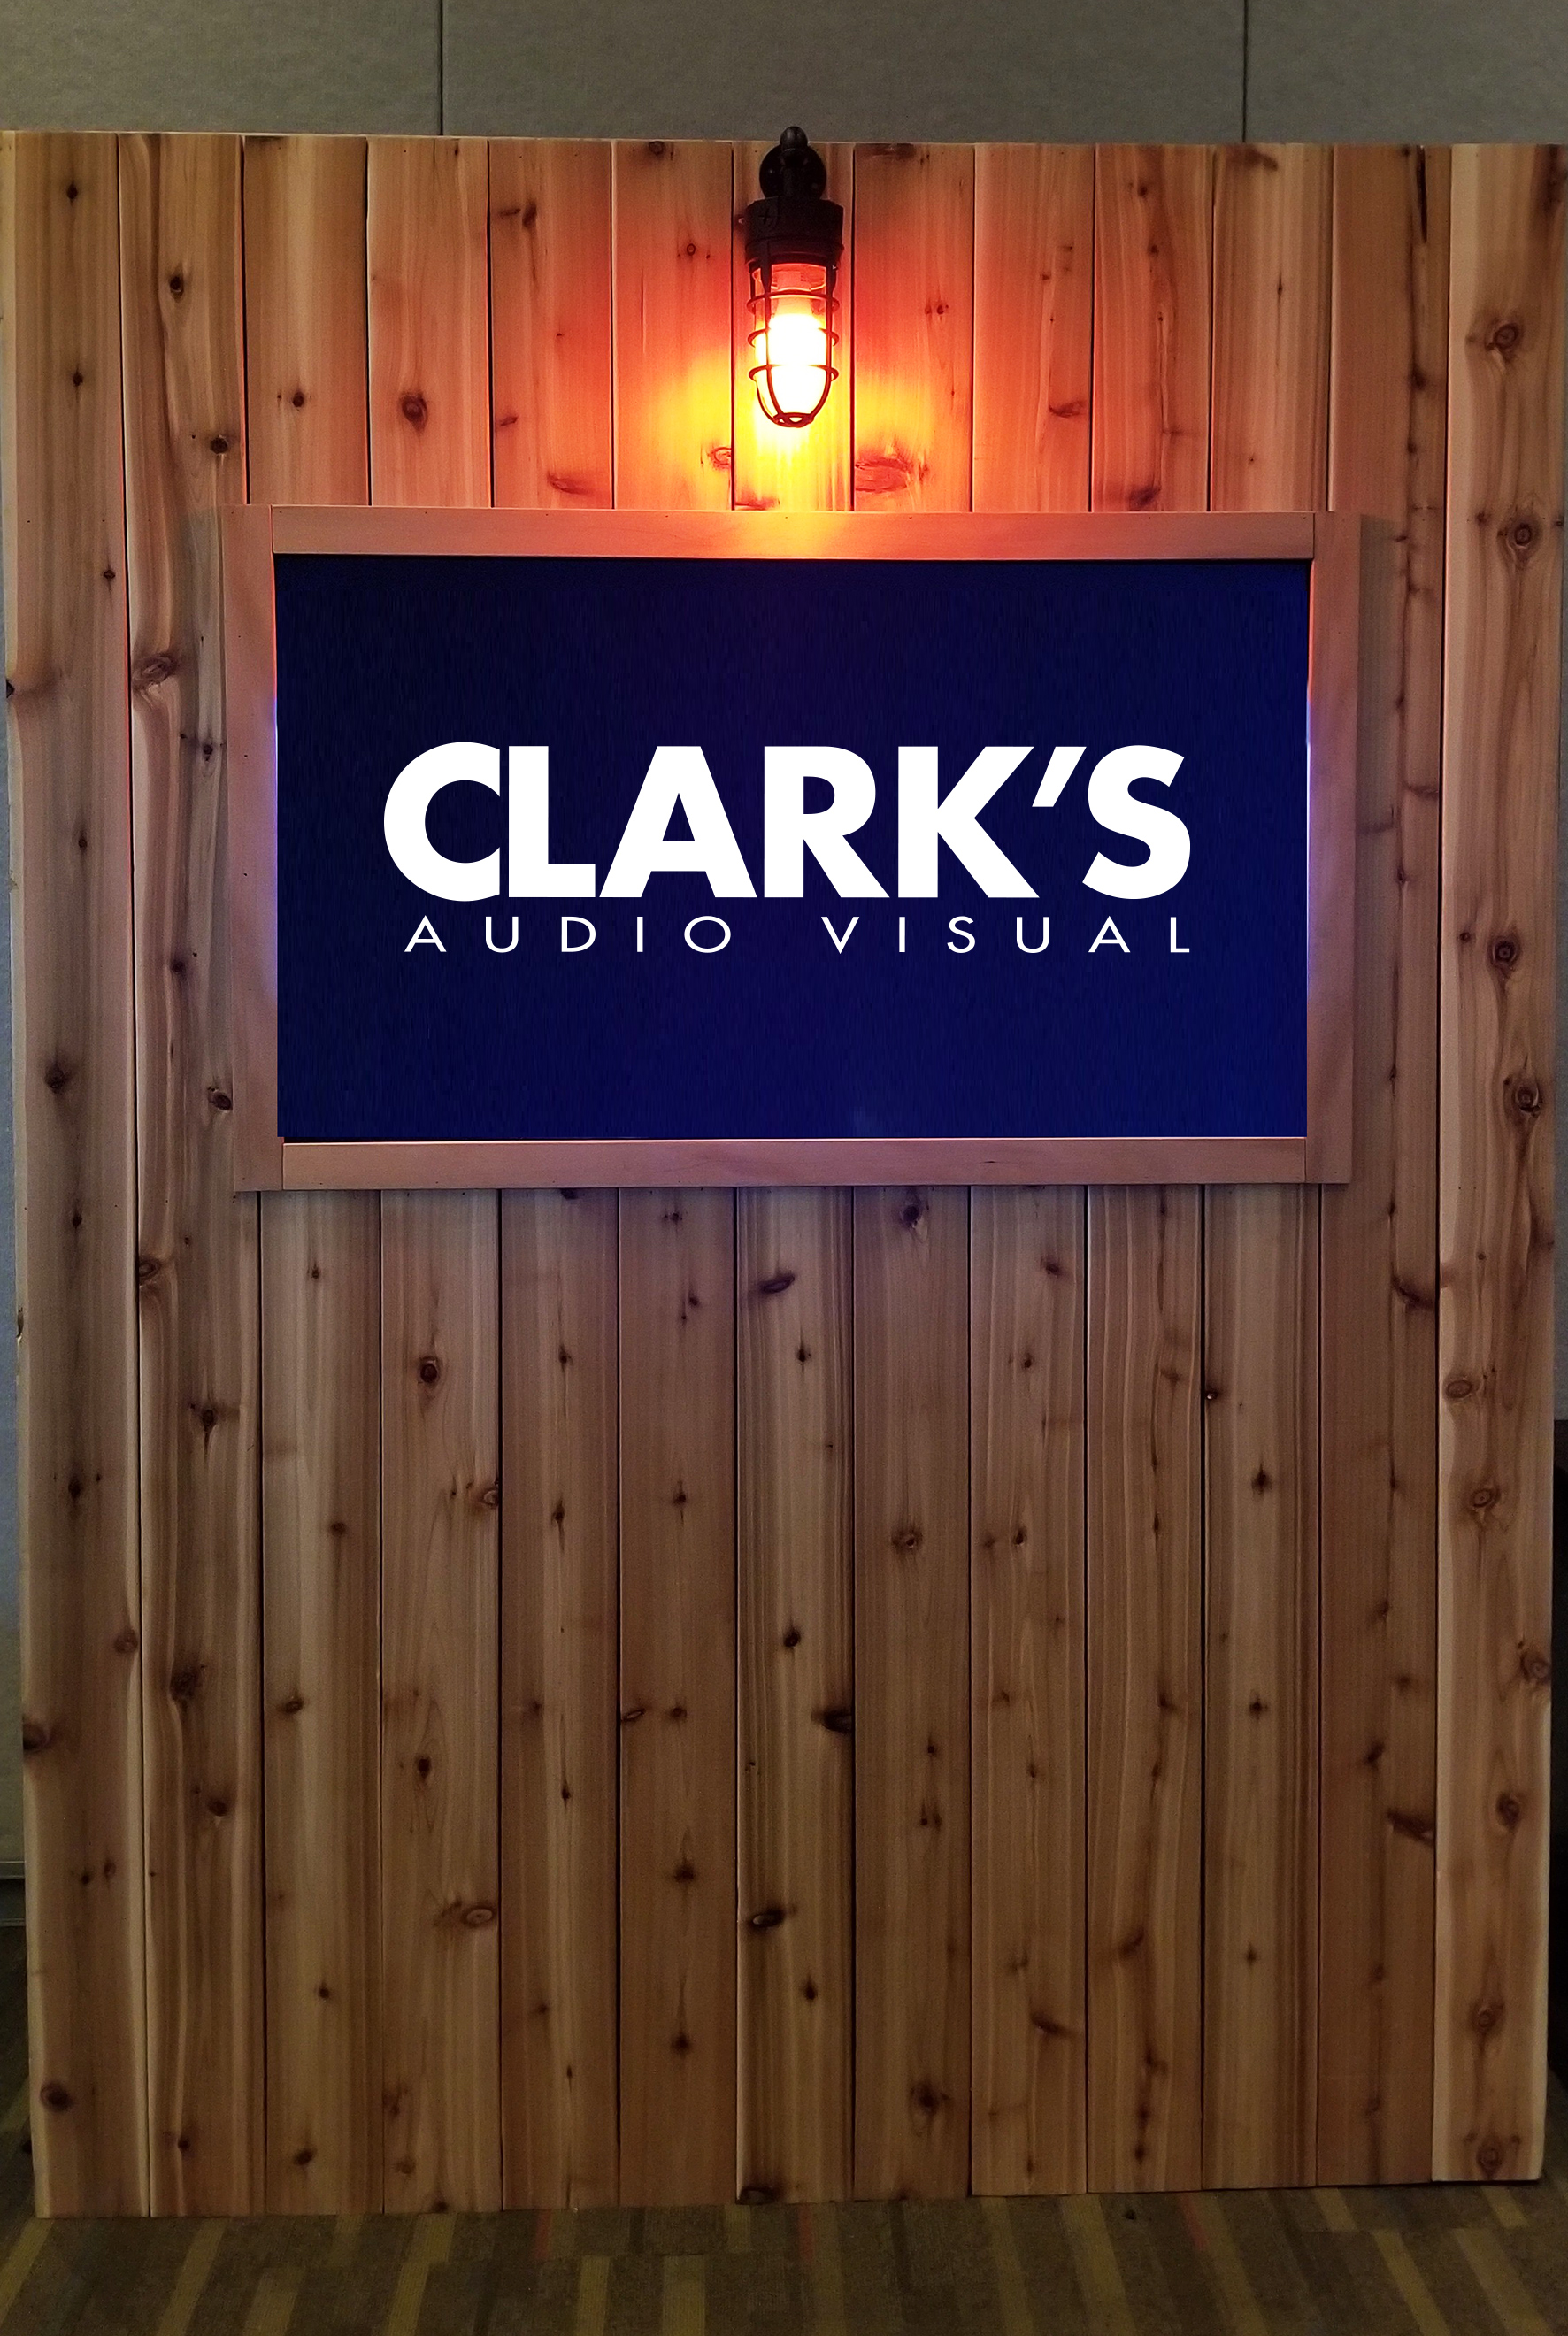 Clarks Audio Visual